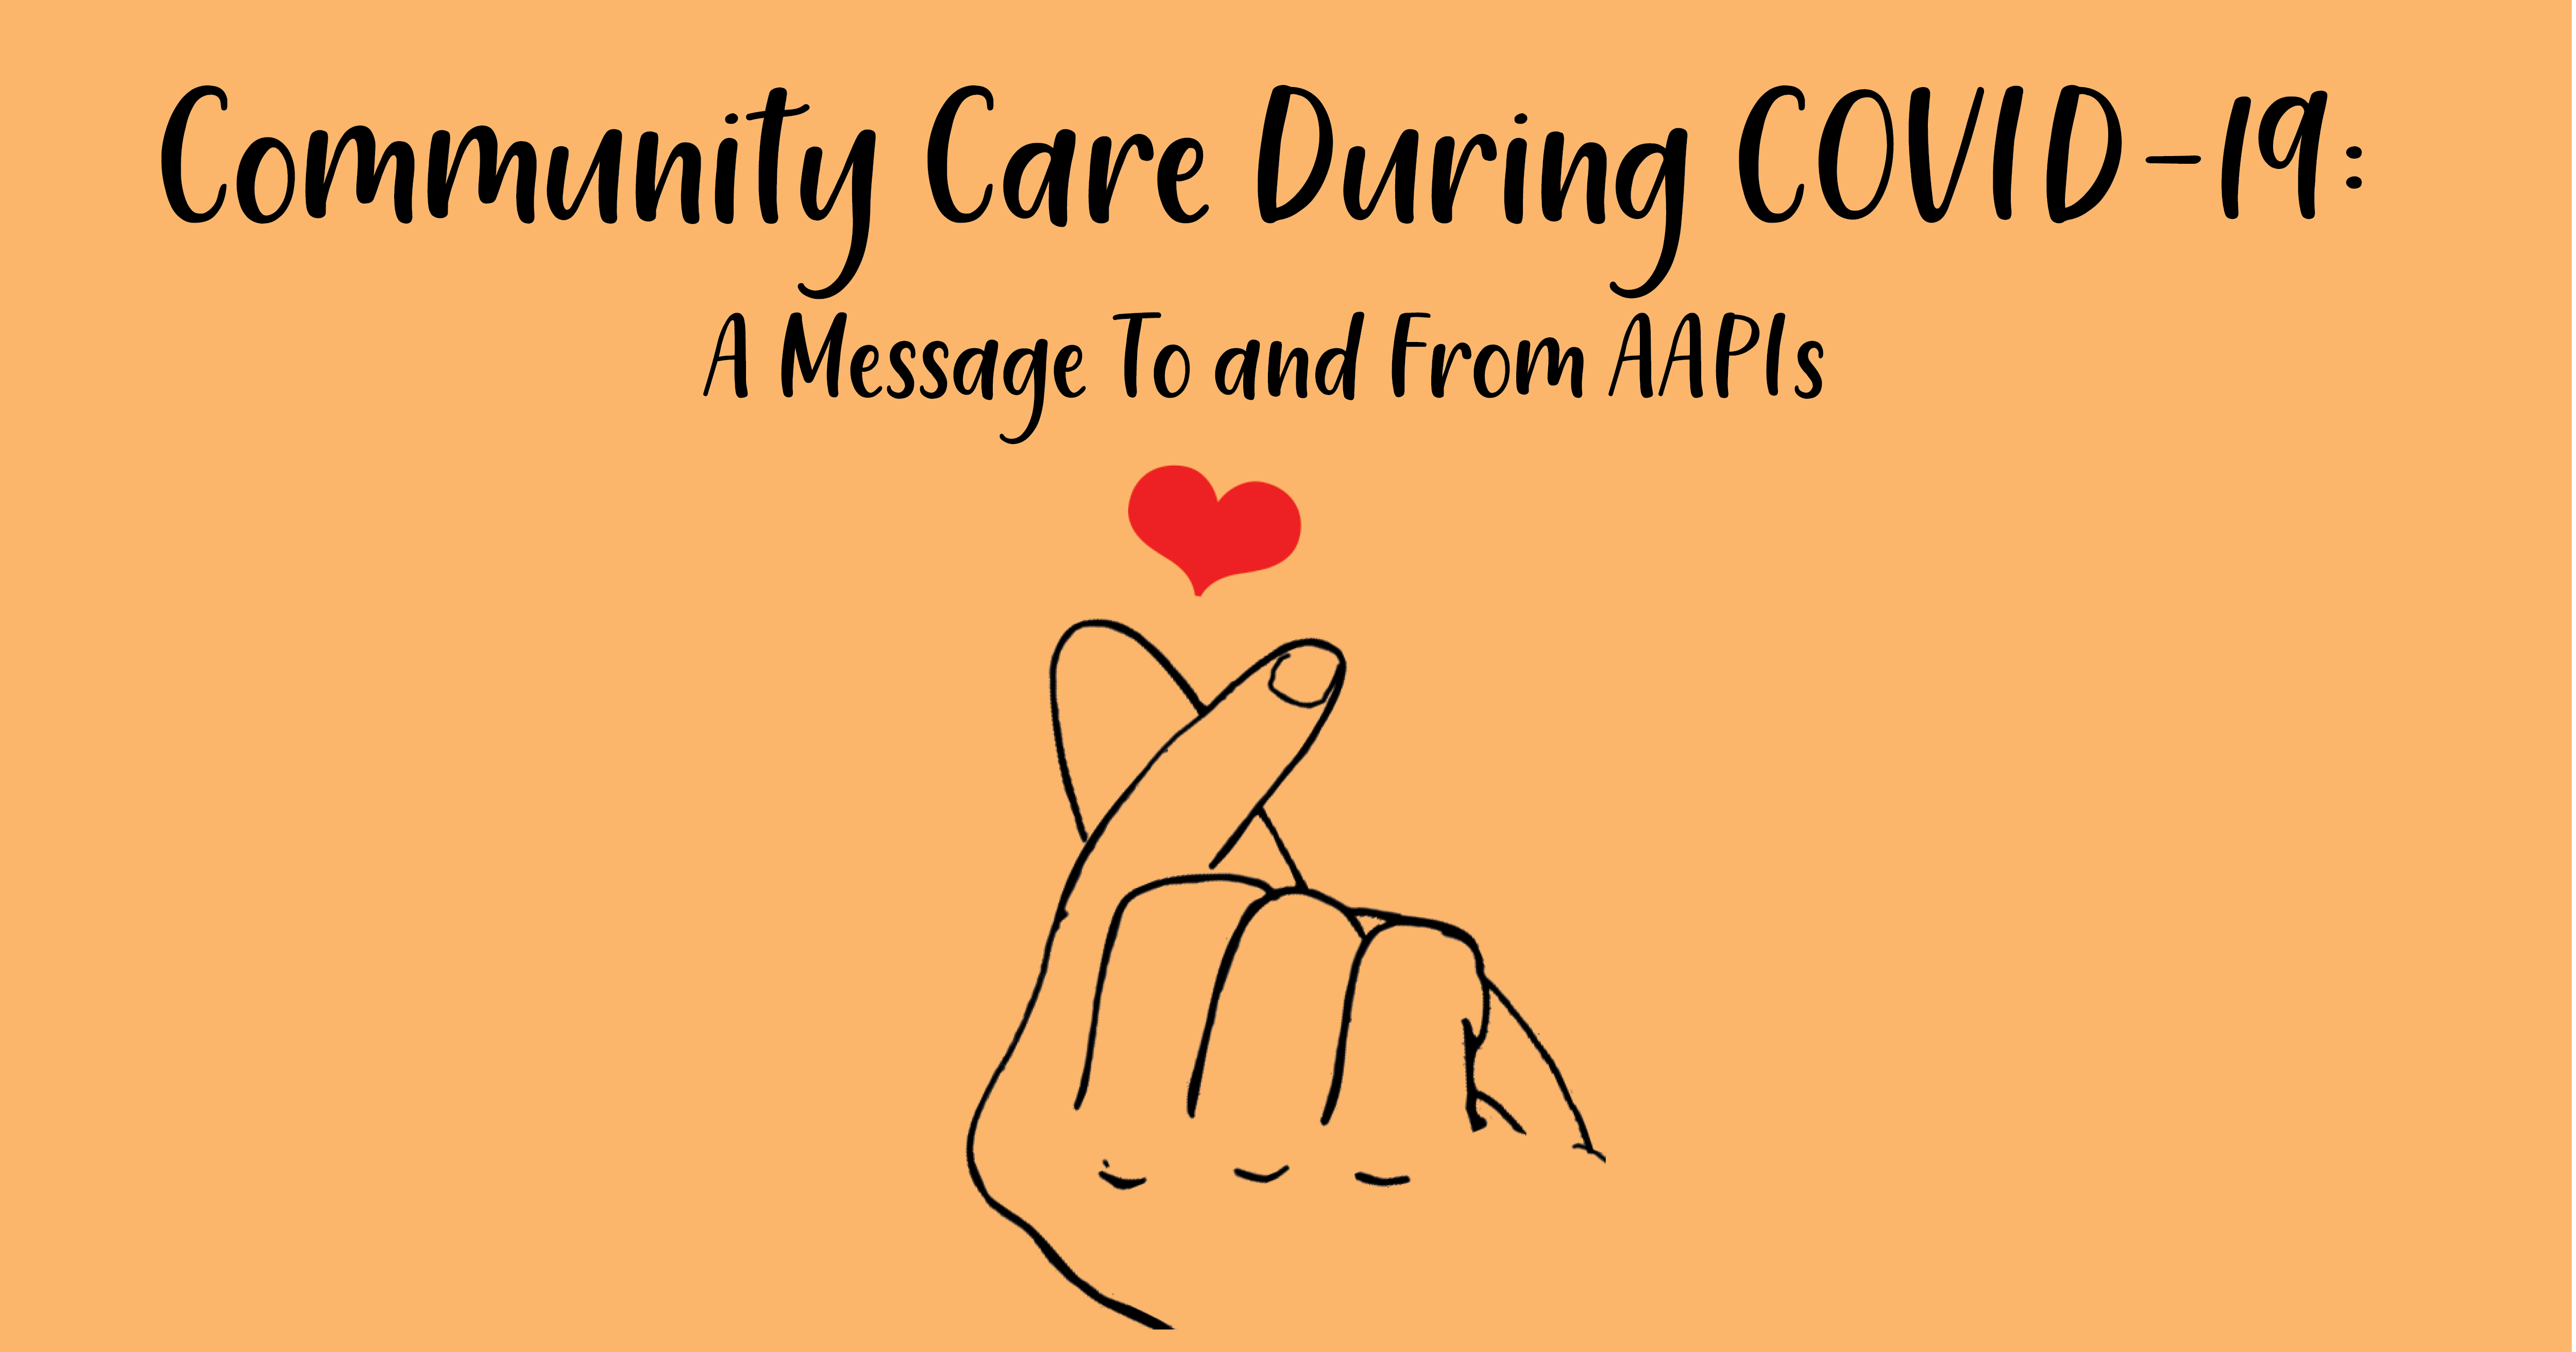 Community Care During COVID-19